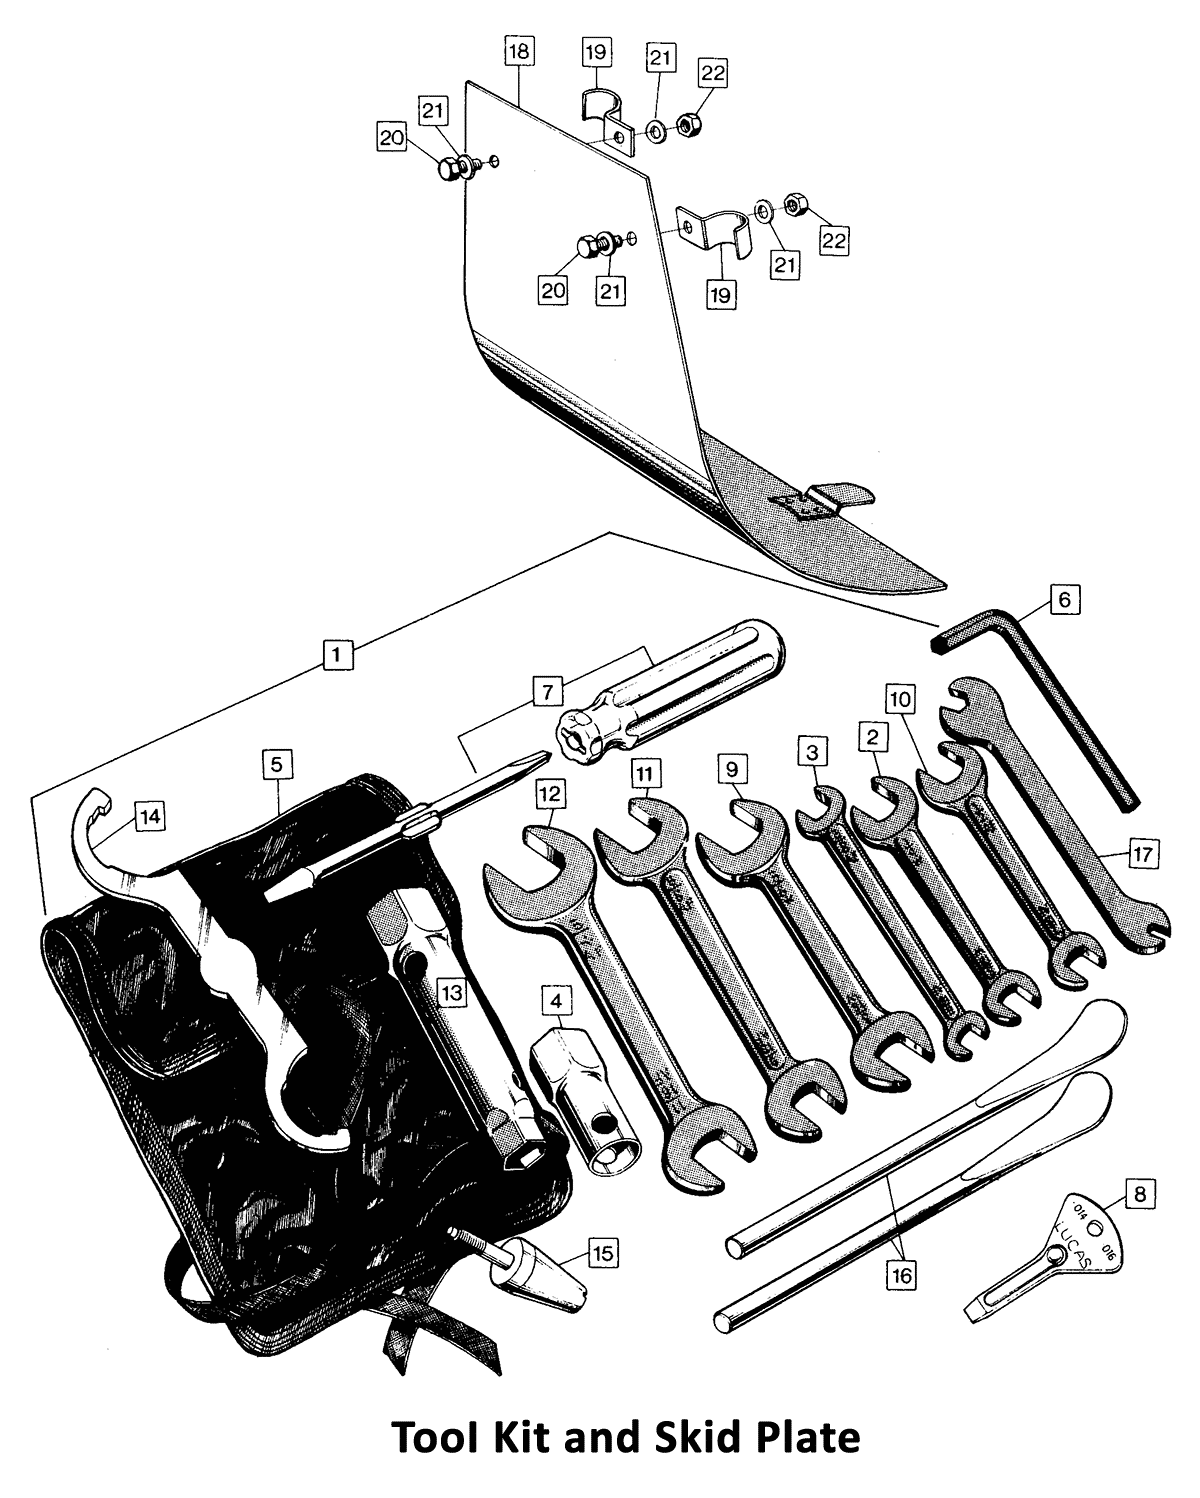 1971 Norton Commando 750 Tool Kit and Skid Plate